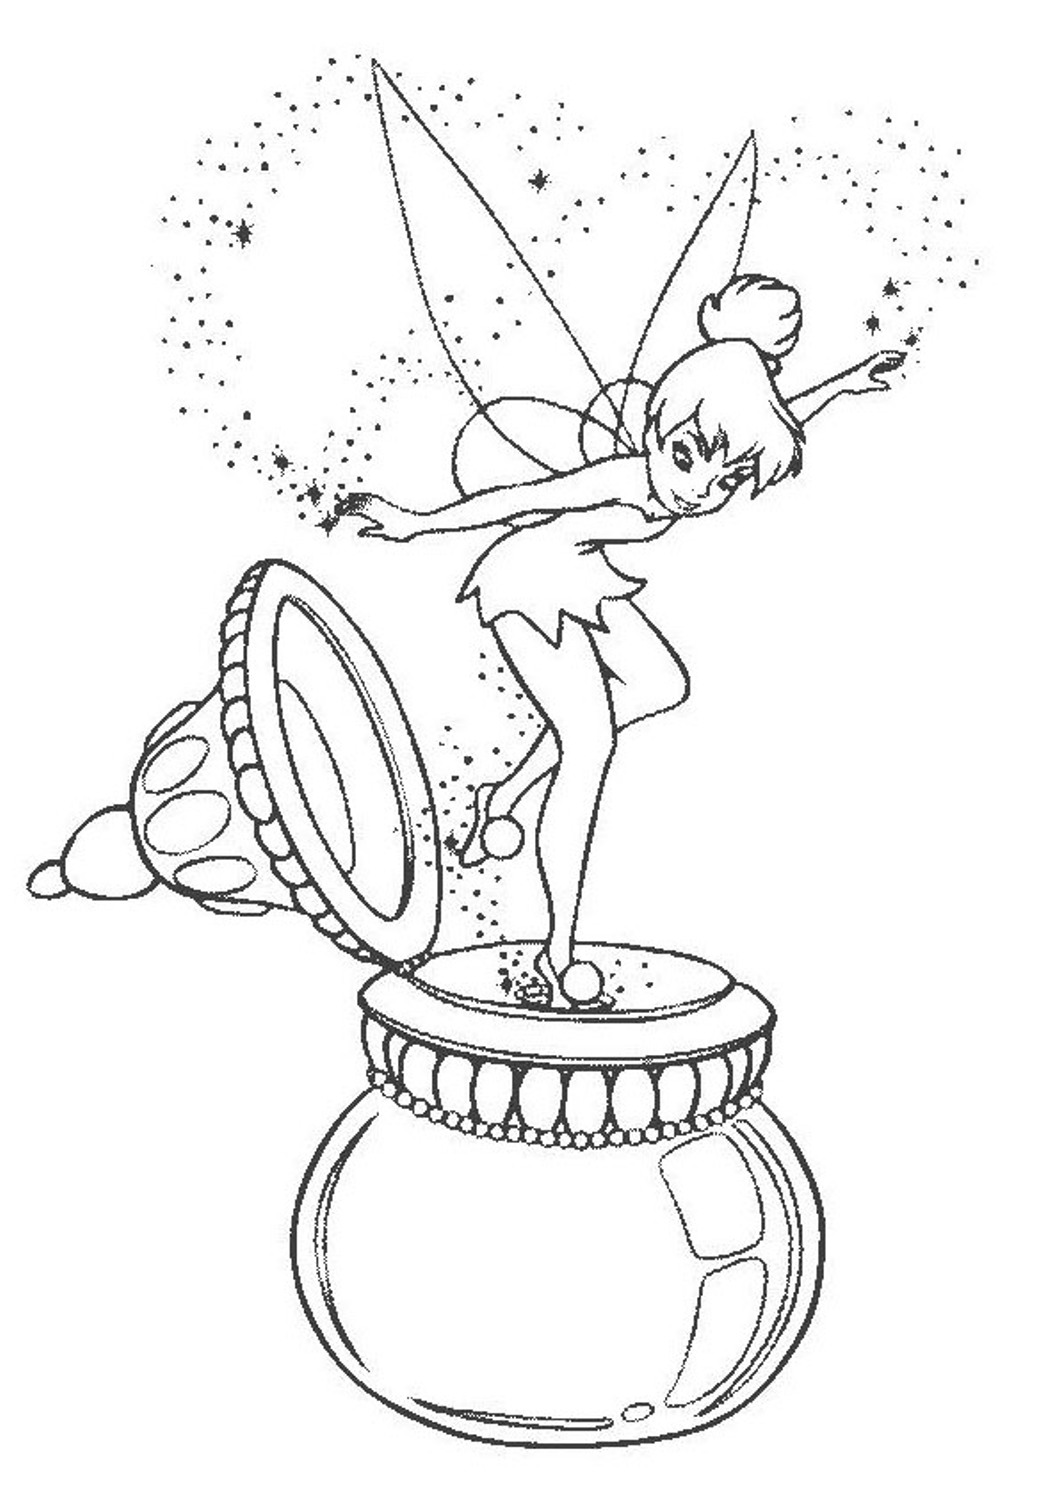 tinkerbell for coloring tinkerbell coloring pages coloring tinkerbell for 1 1